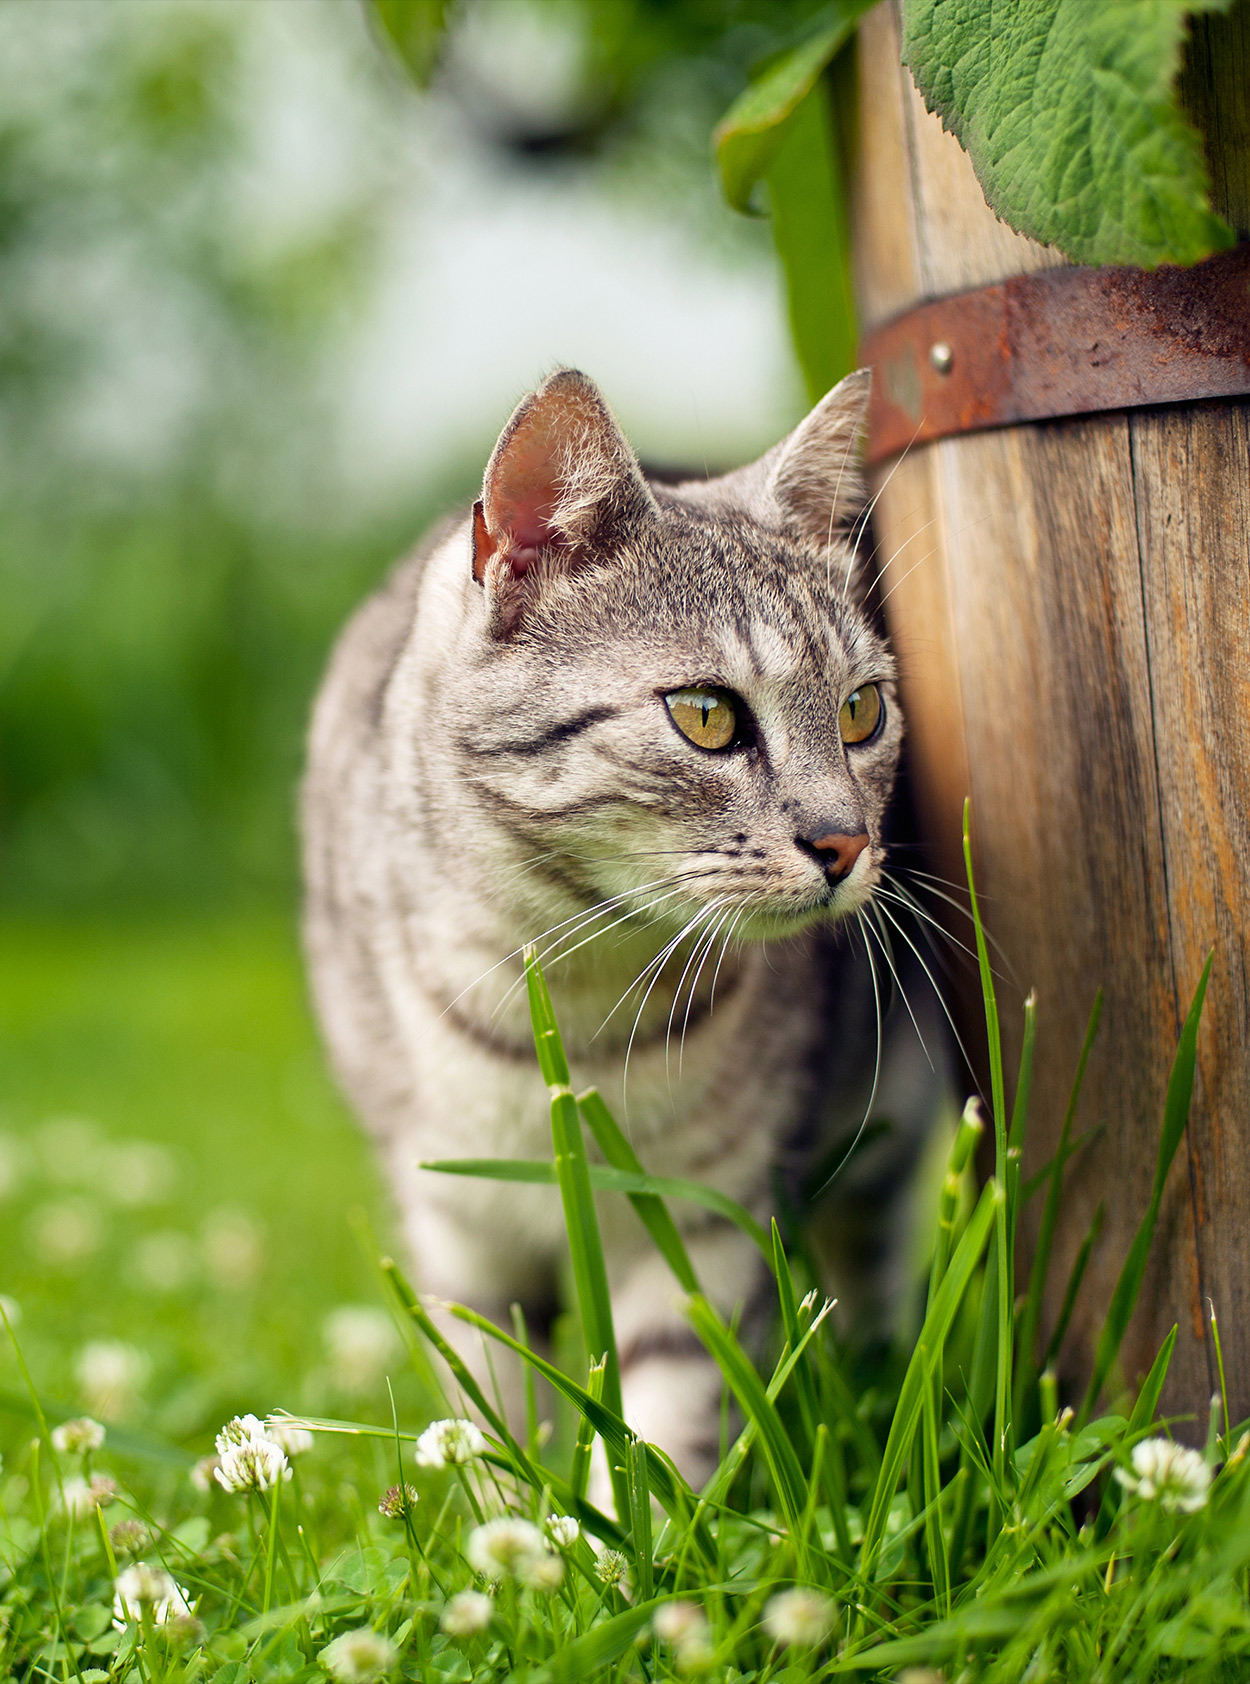 wheatgrass for cats